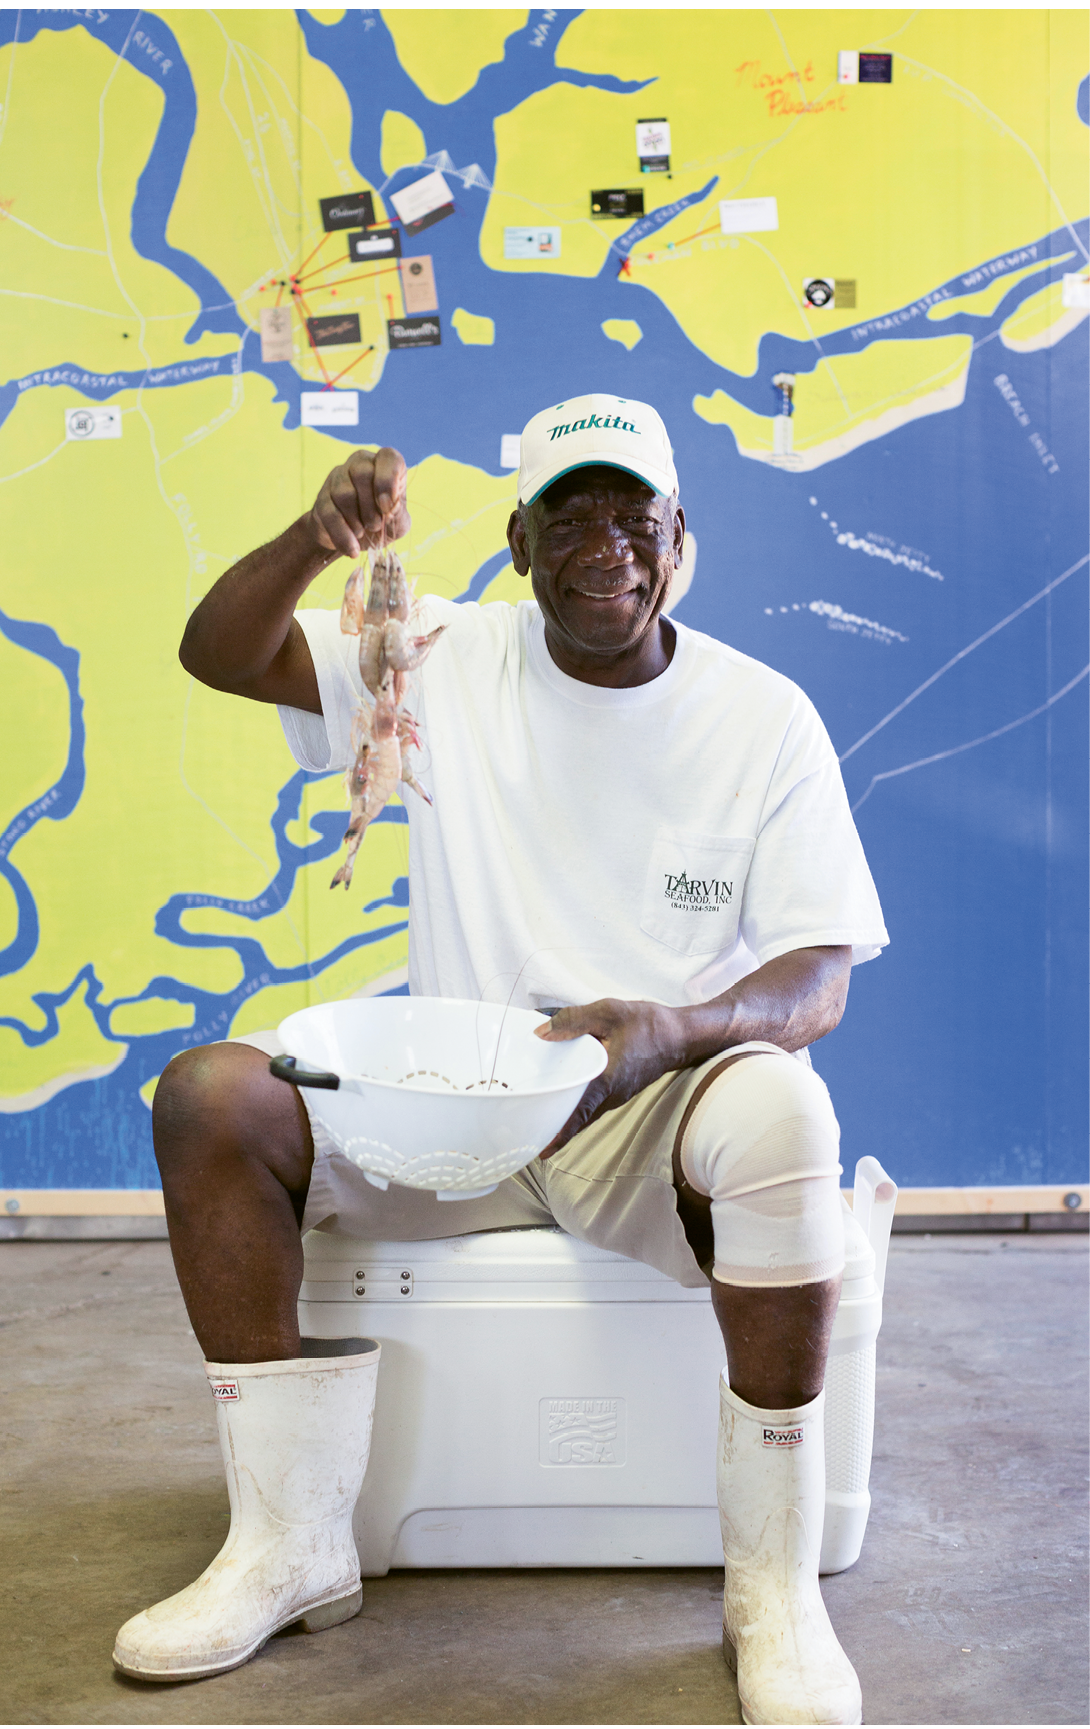 Longtime local shrimper John Henry Middleton is Cindy Tarvin's right-hand man at Tarvin Seafood